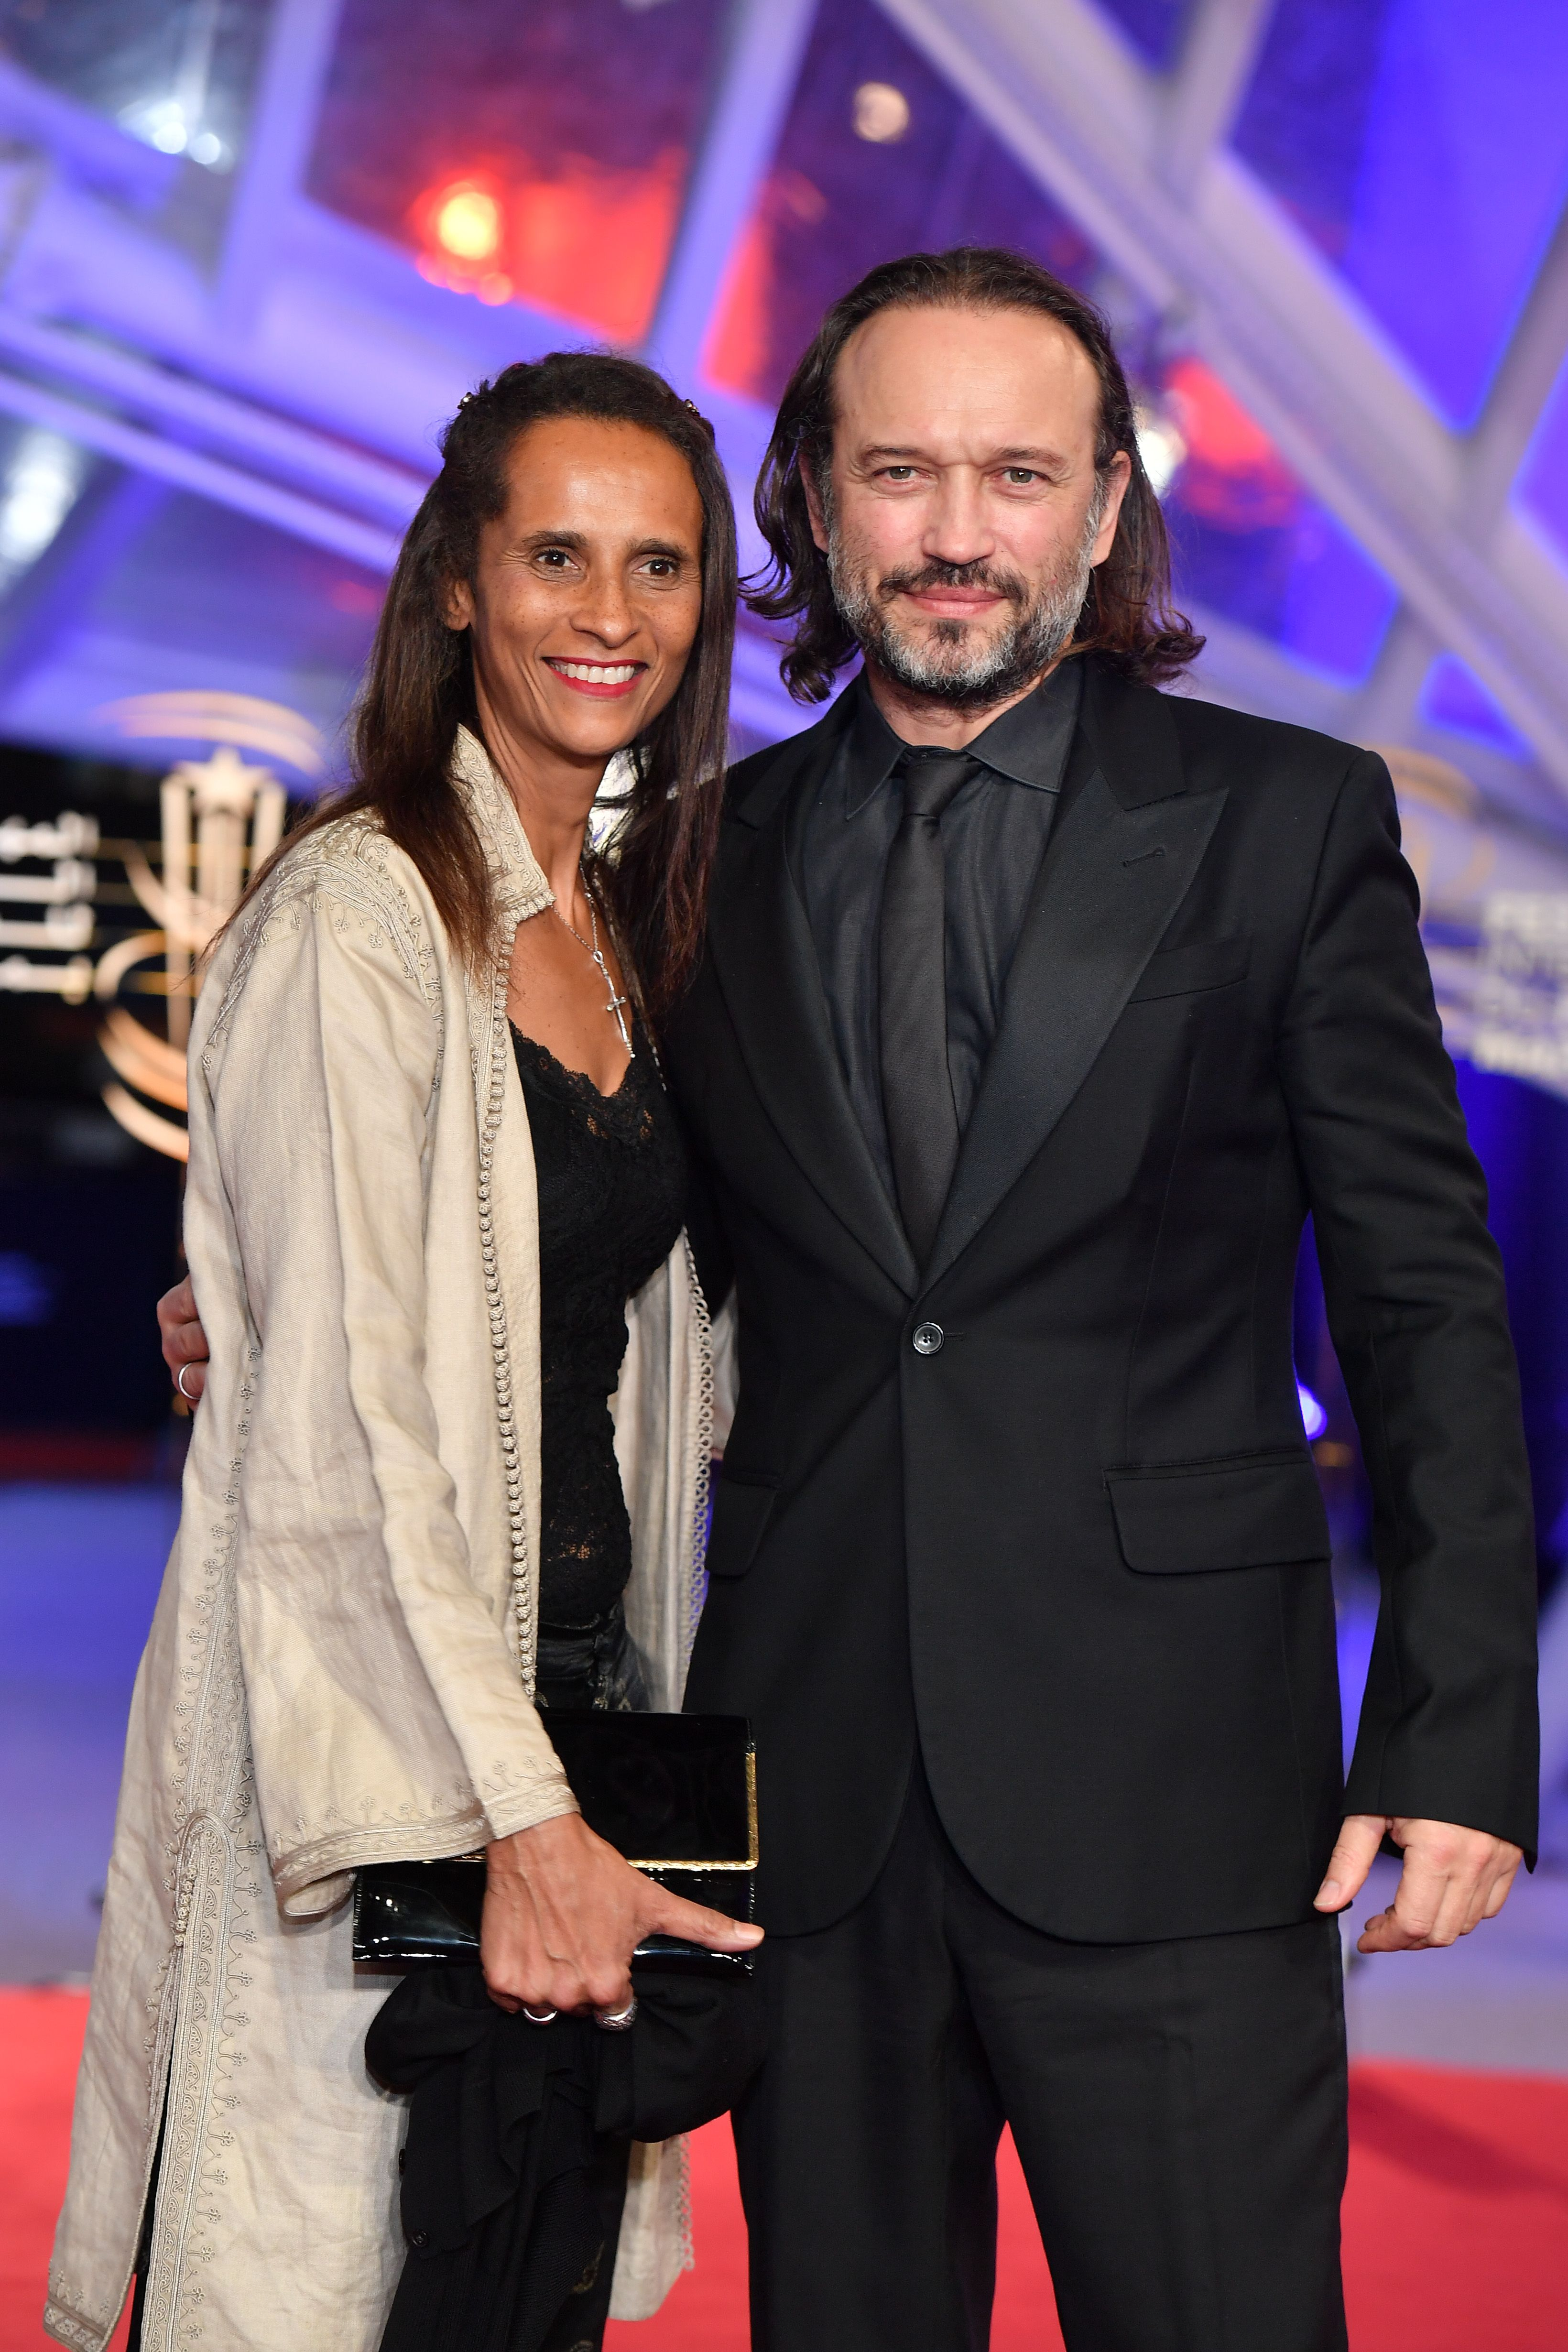 Karine Silla et Vincent Perez assistent à la cérémonie d'ouverture du 17e Festival international du film de Marrakech le 30 novembre 2018 à Marrakech, au Maroc. | Photo : Getty Images